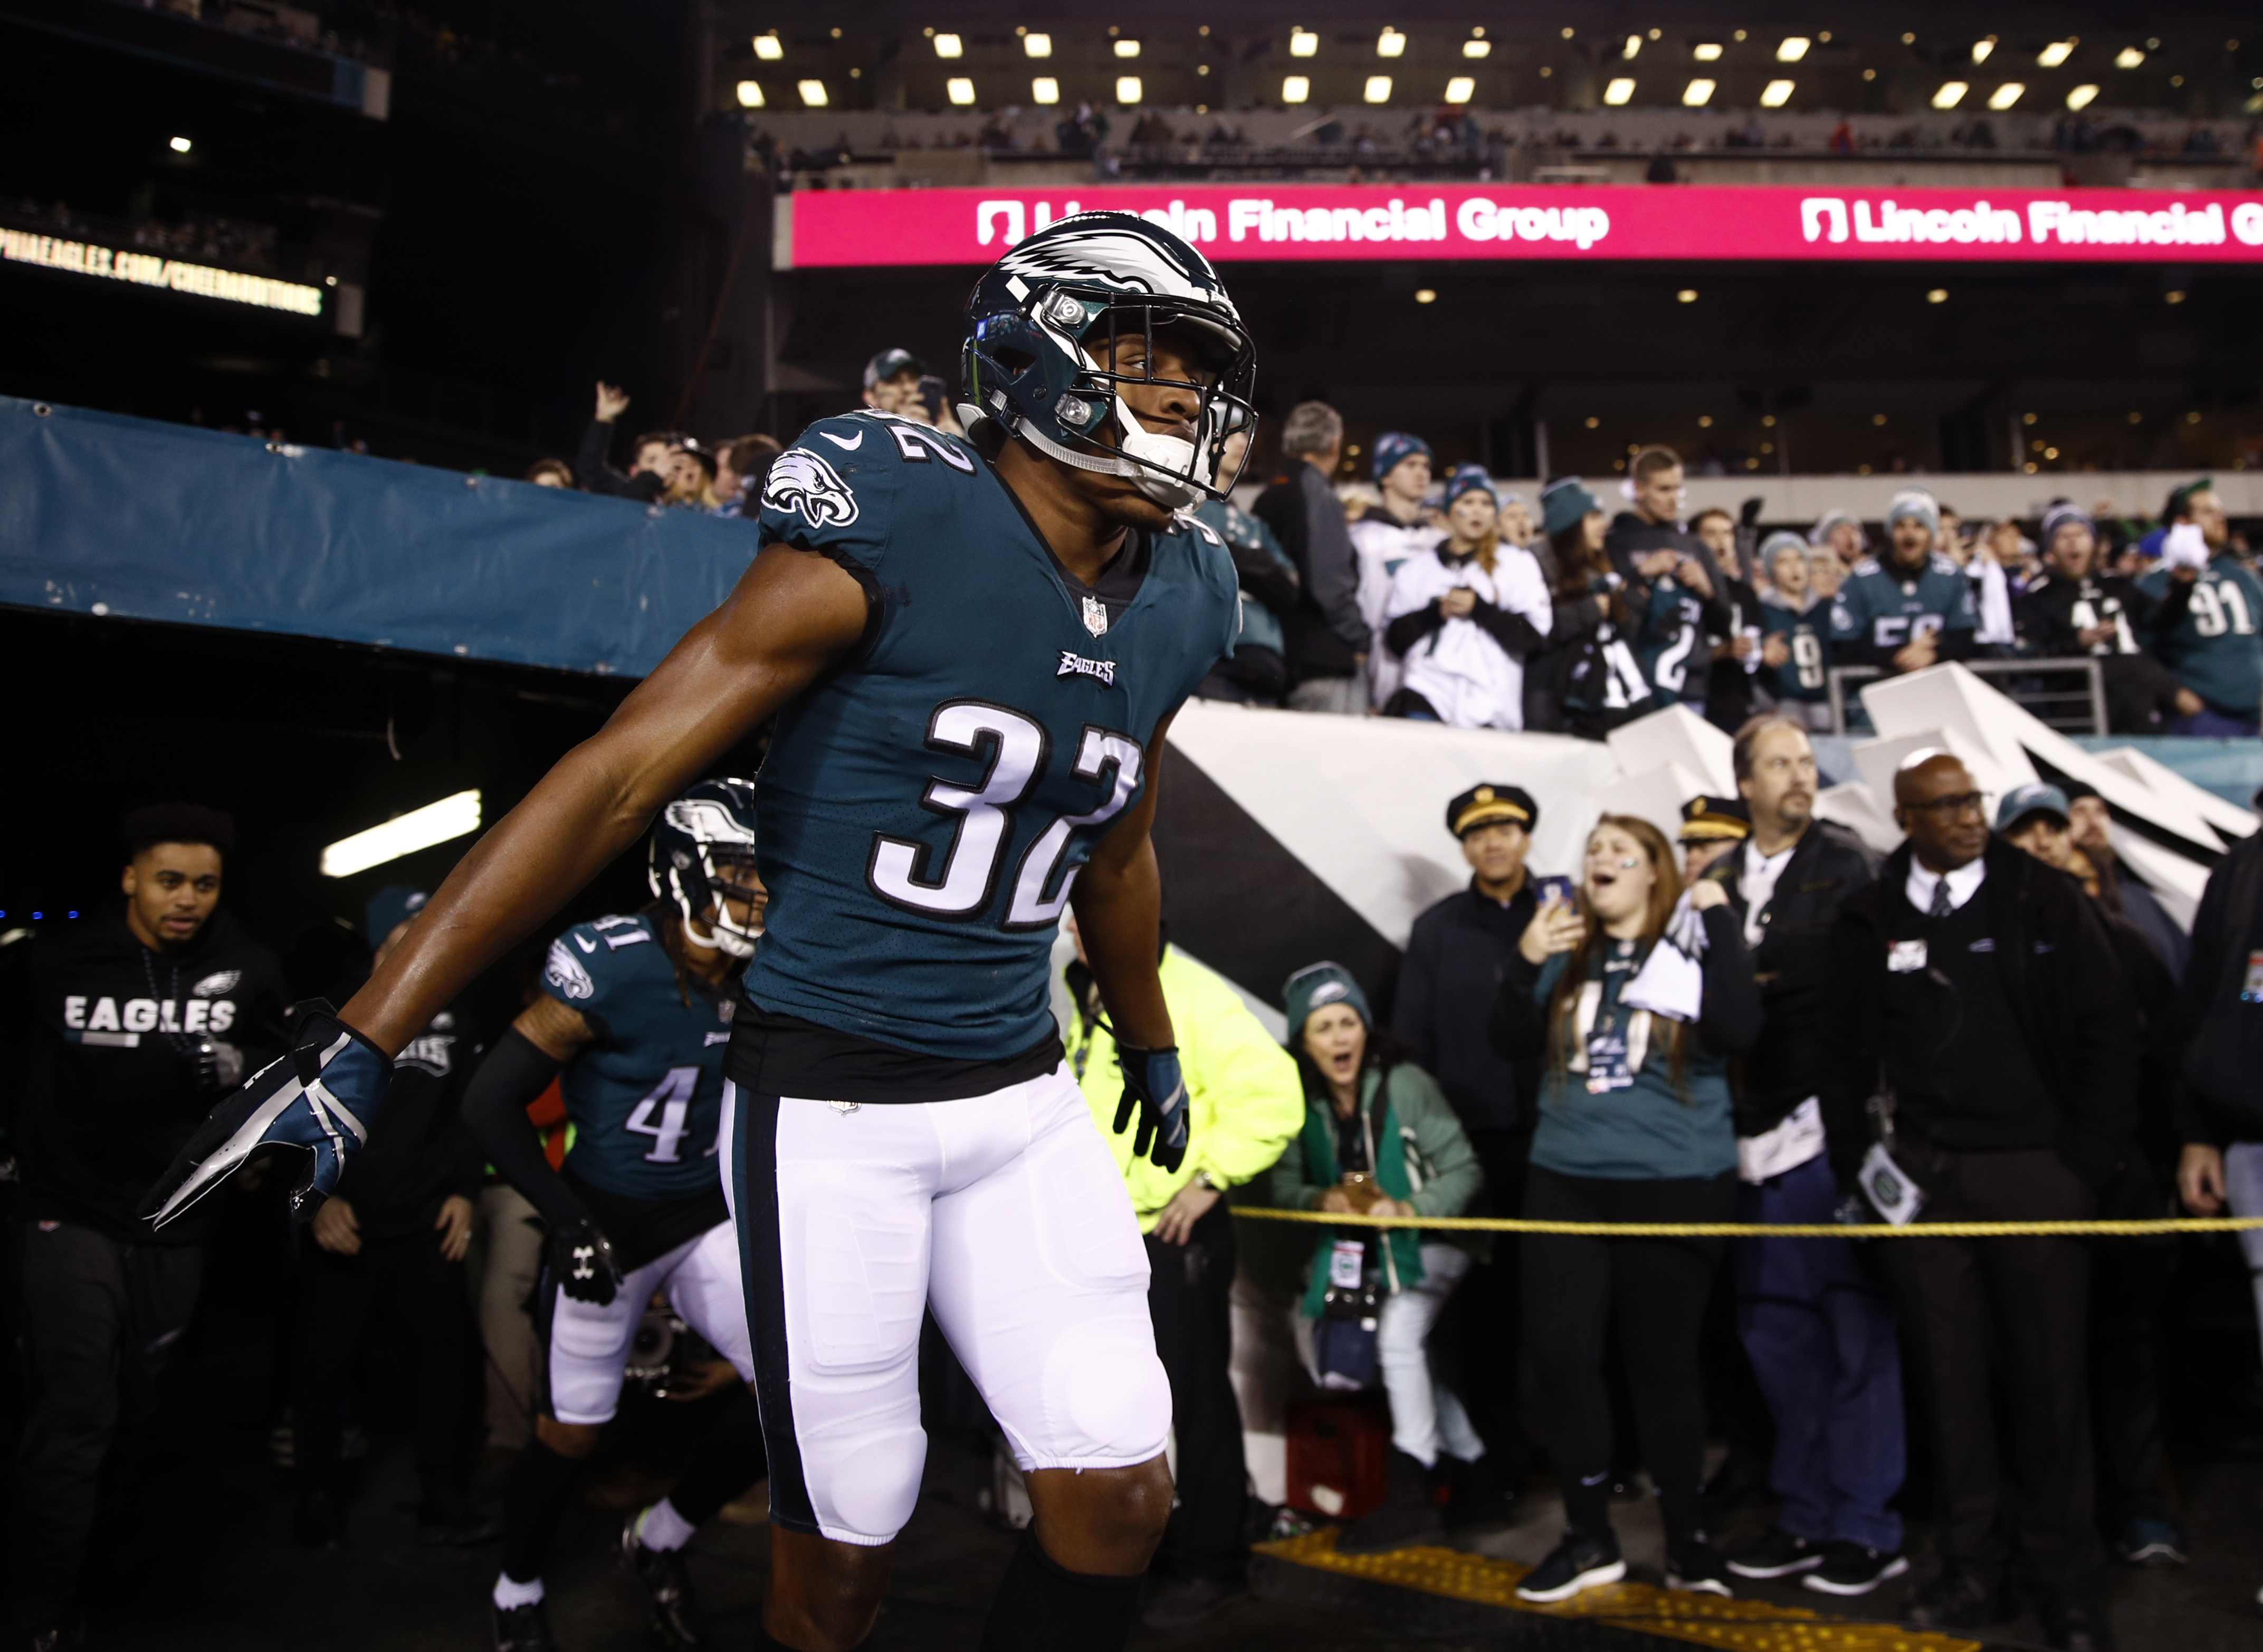 Philadelphia Eagles' Rasul Douglas takes the field before the NFL football NFC championship game against the Minnesota Vikings Sunday, Jan. 21, 2018, in Philadelphia. (AP Photo/Patrick Semansky)